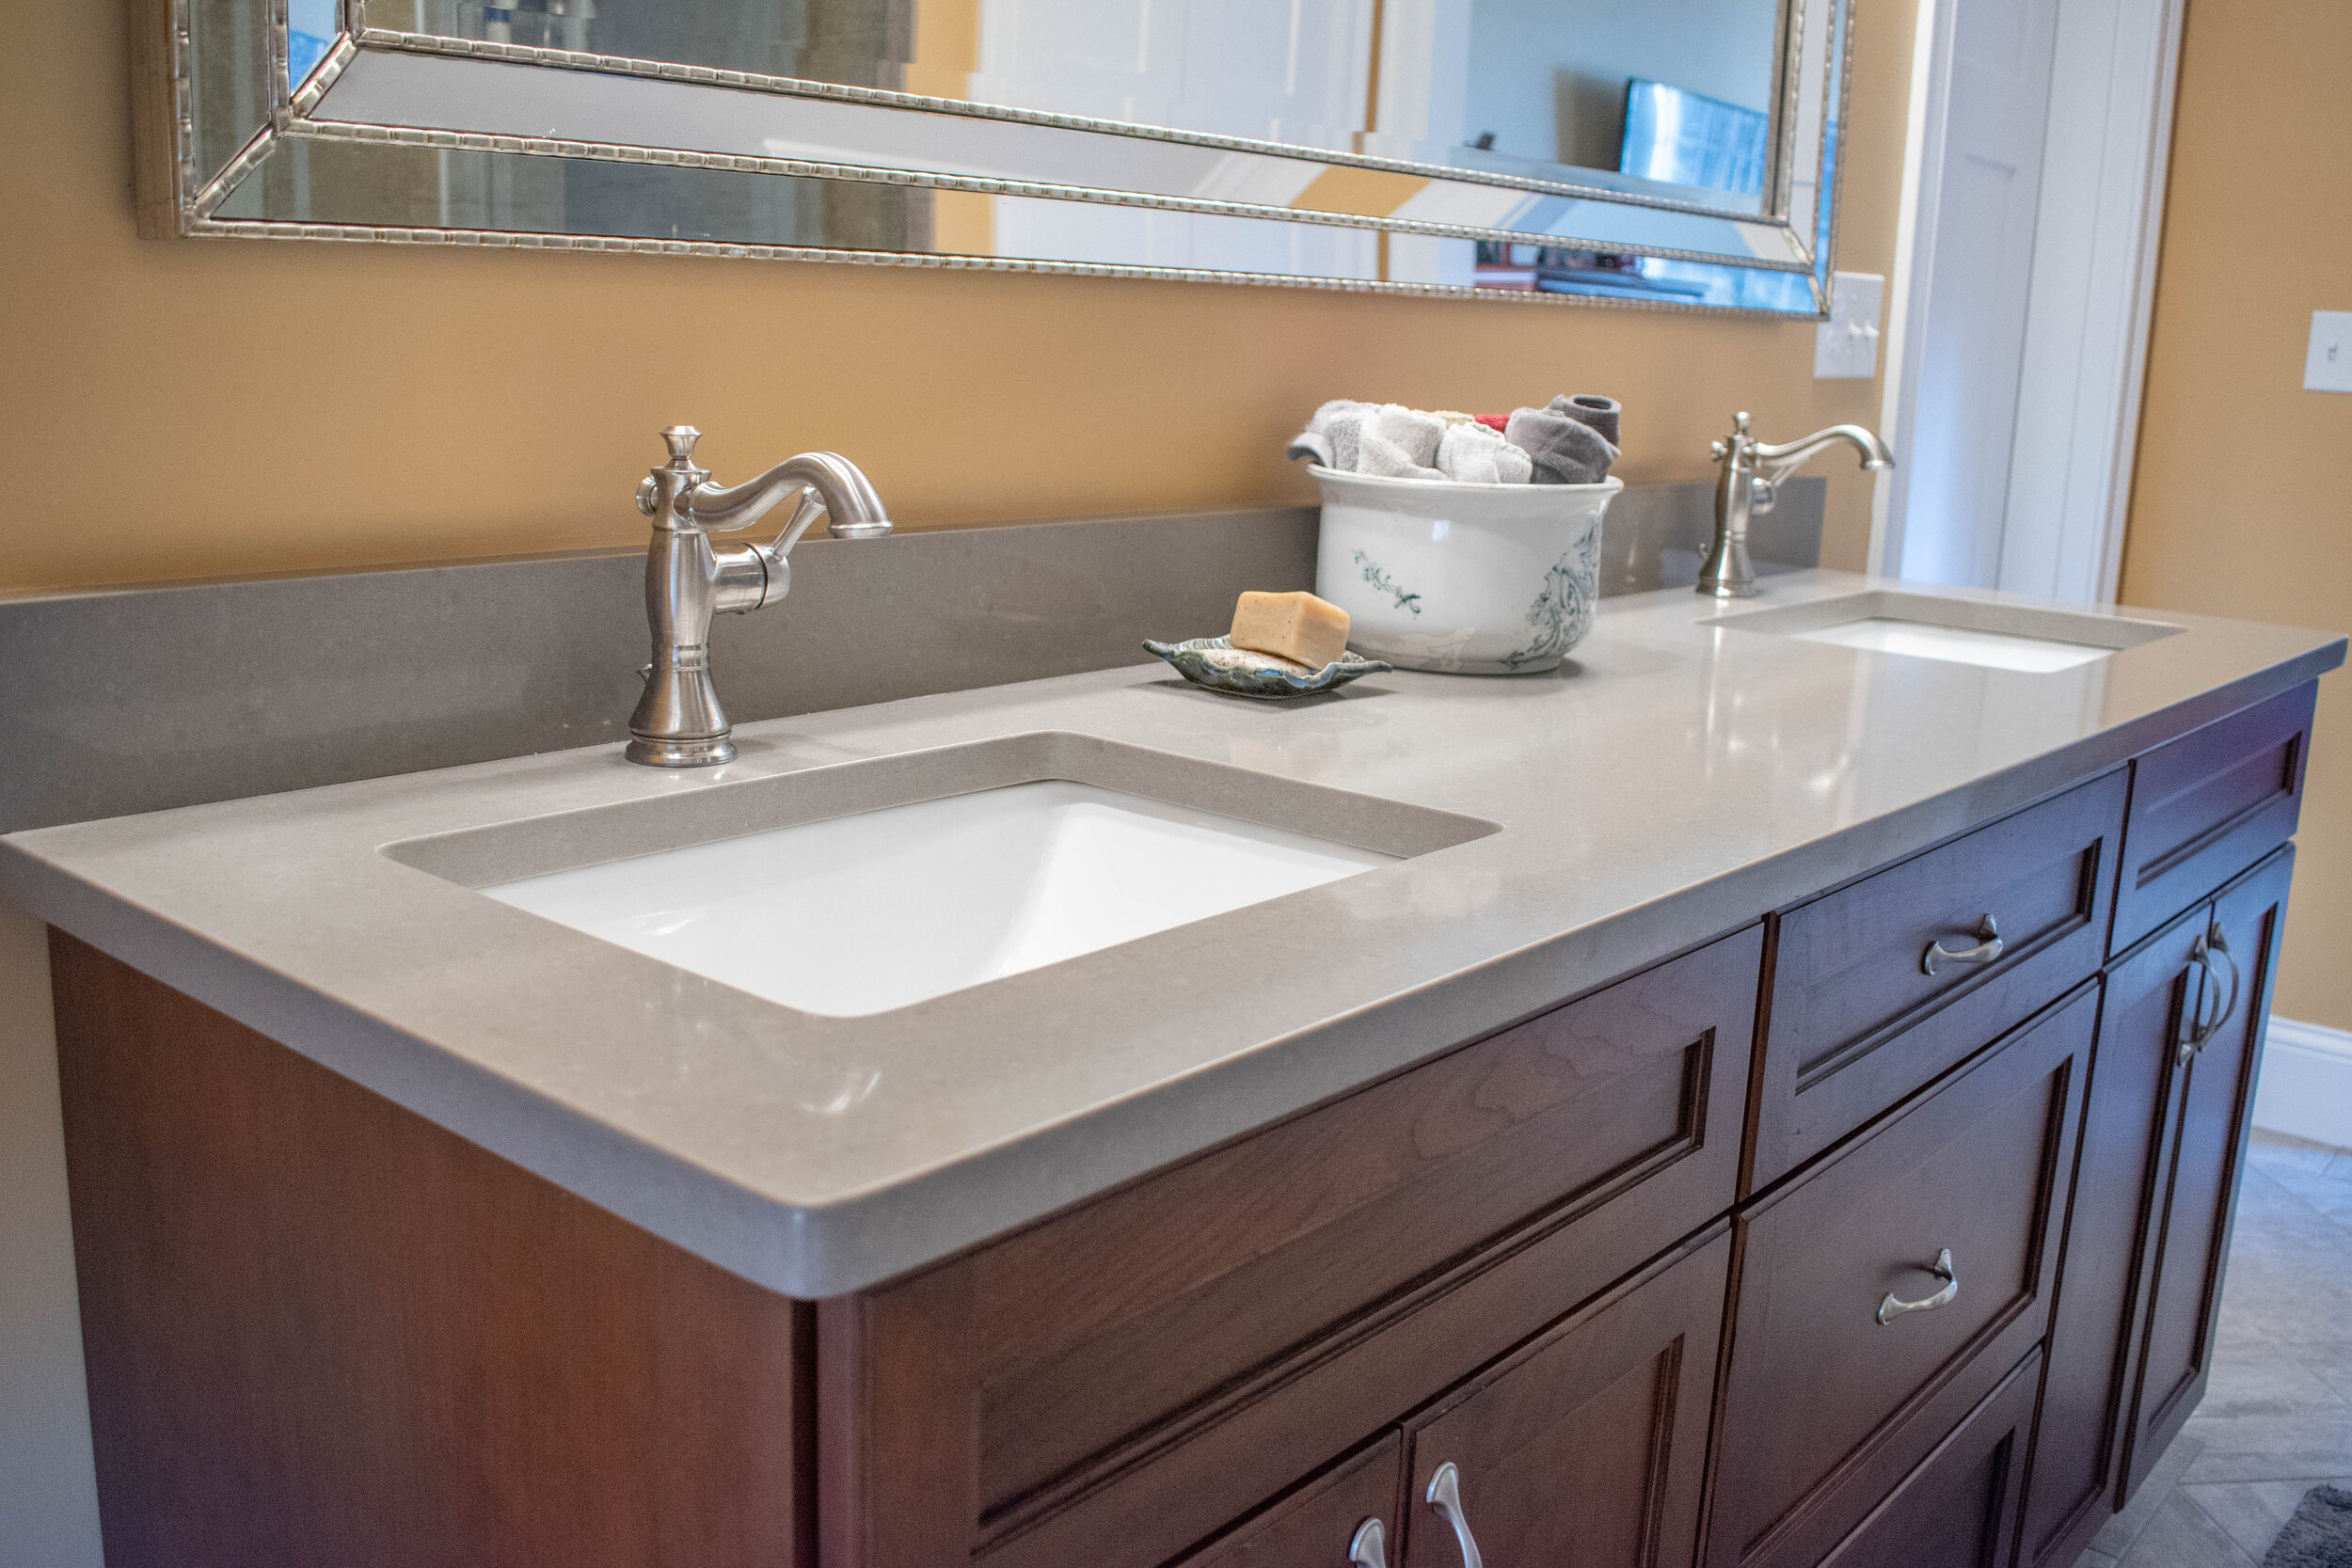 Material: Q-MSI Concerto  Thickness, Finish & Stone Type: 3CM Polished Quartz  Edge: Eased  Sink: KP23 W